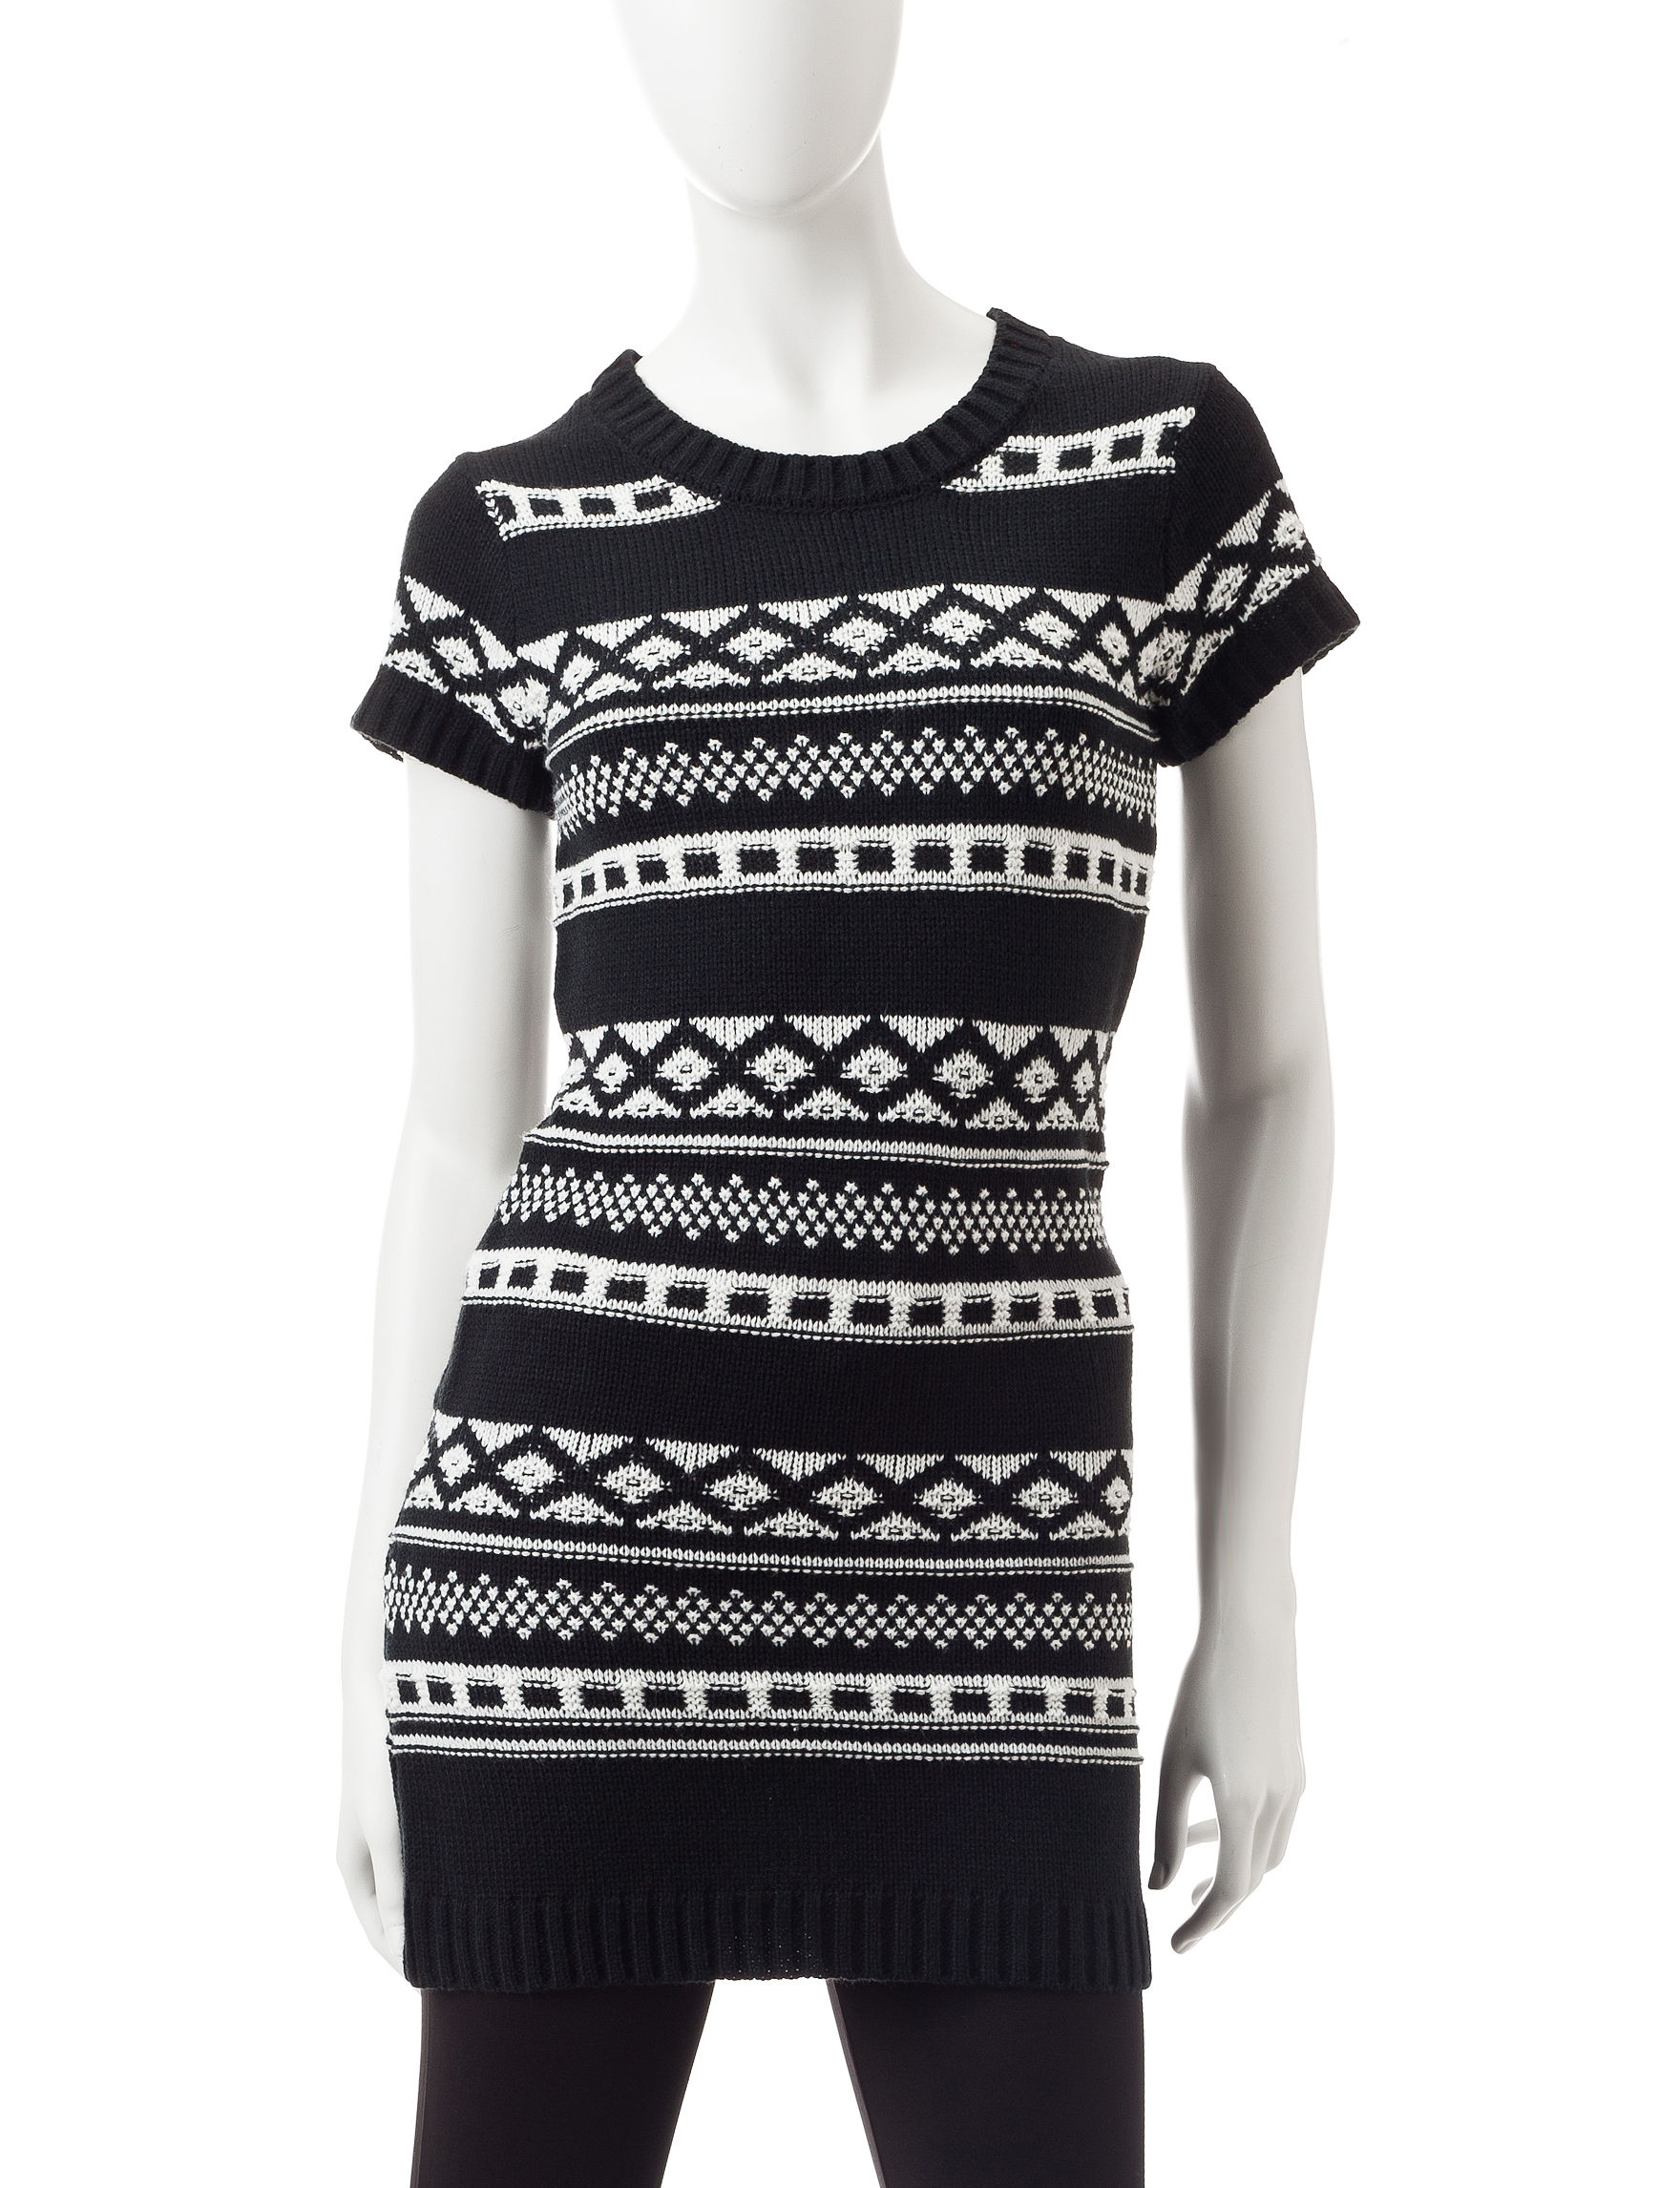 Made for Me to Look Amazing Black / White Sweaters Tunics